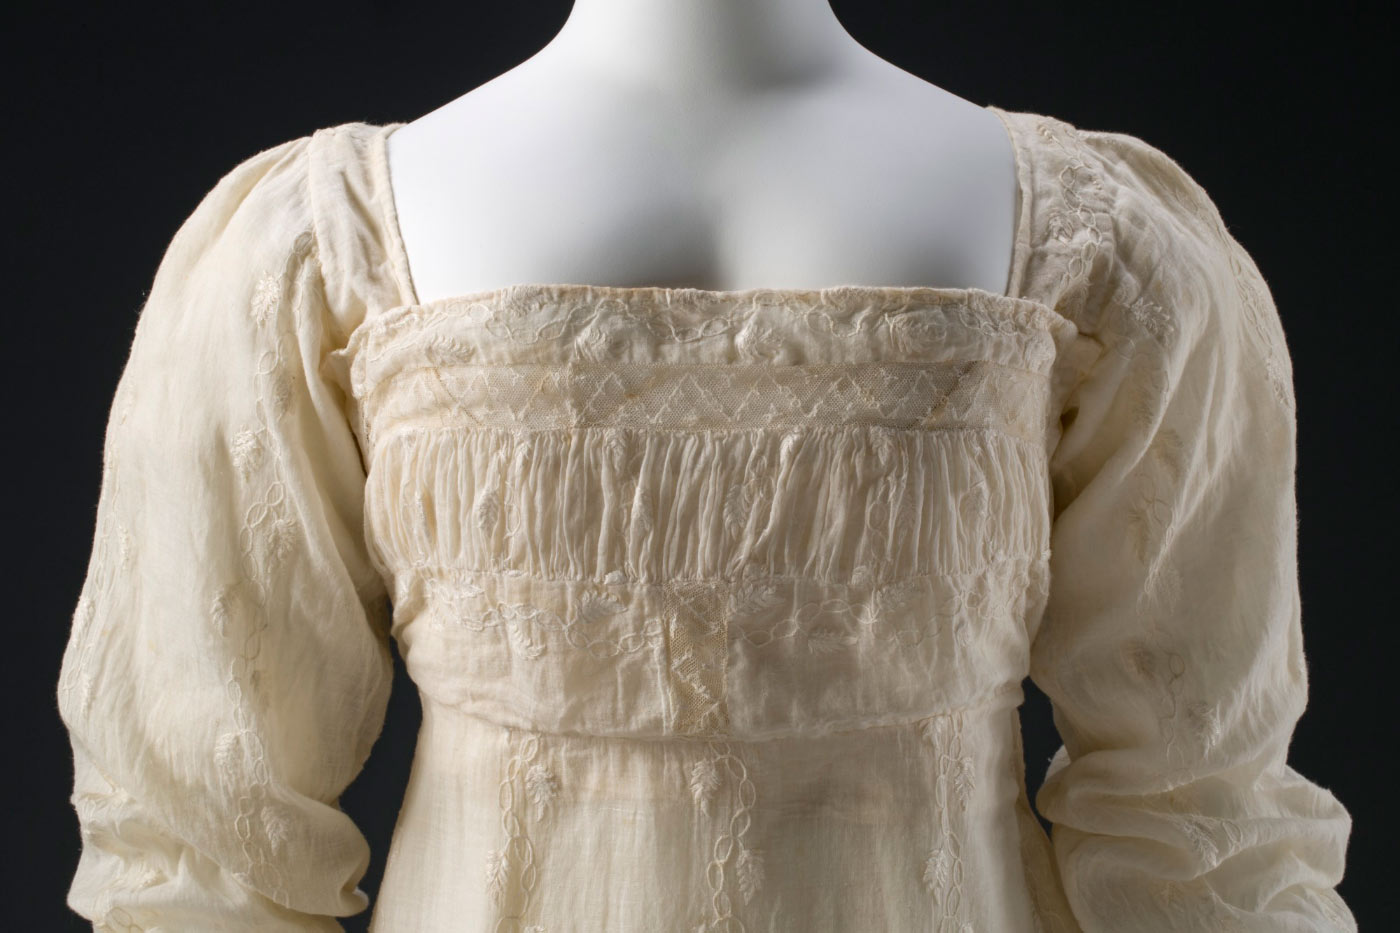 Bodice featuring a shirred band, which has an insertion of machine-embroidered net (a later alteration) at the top.